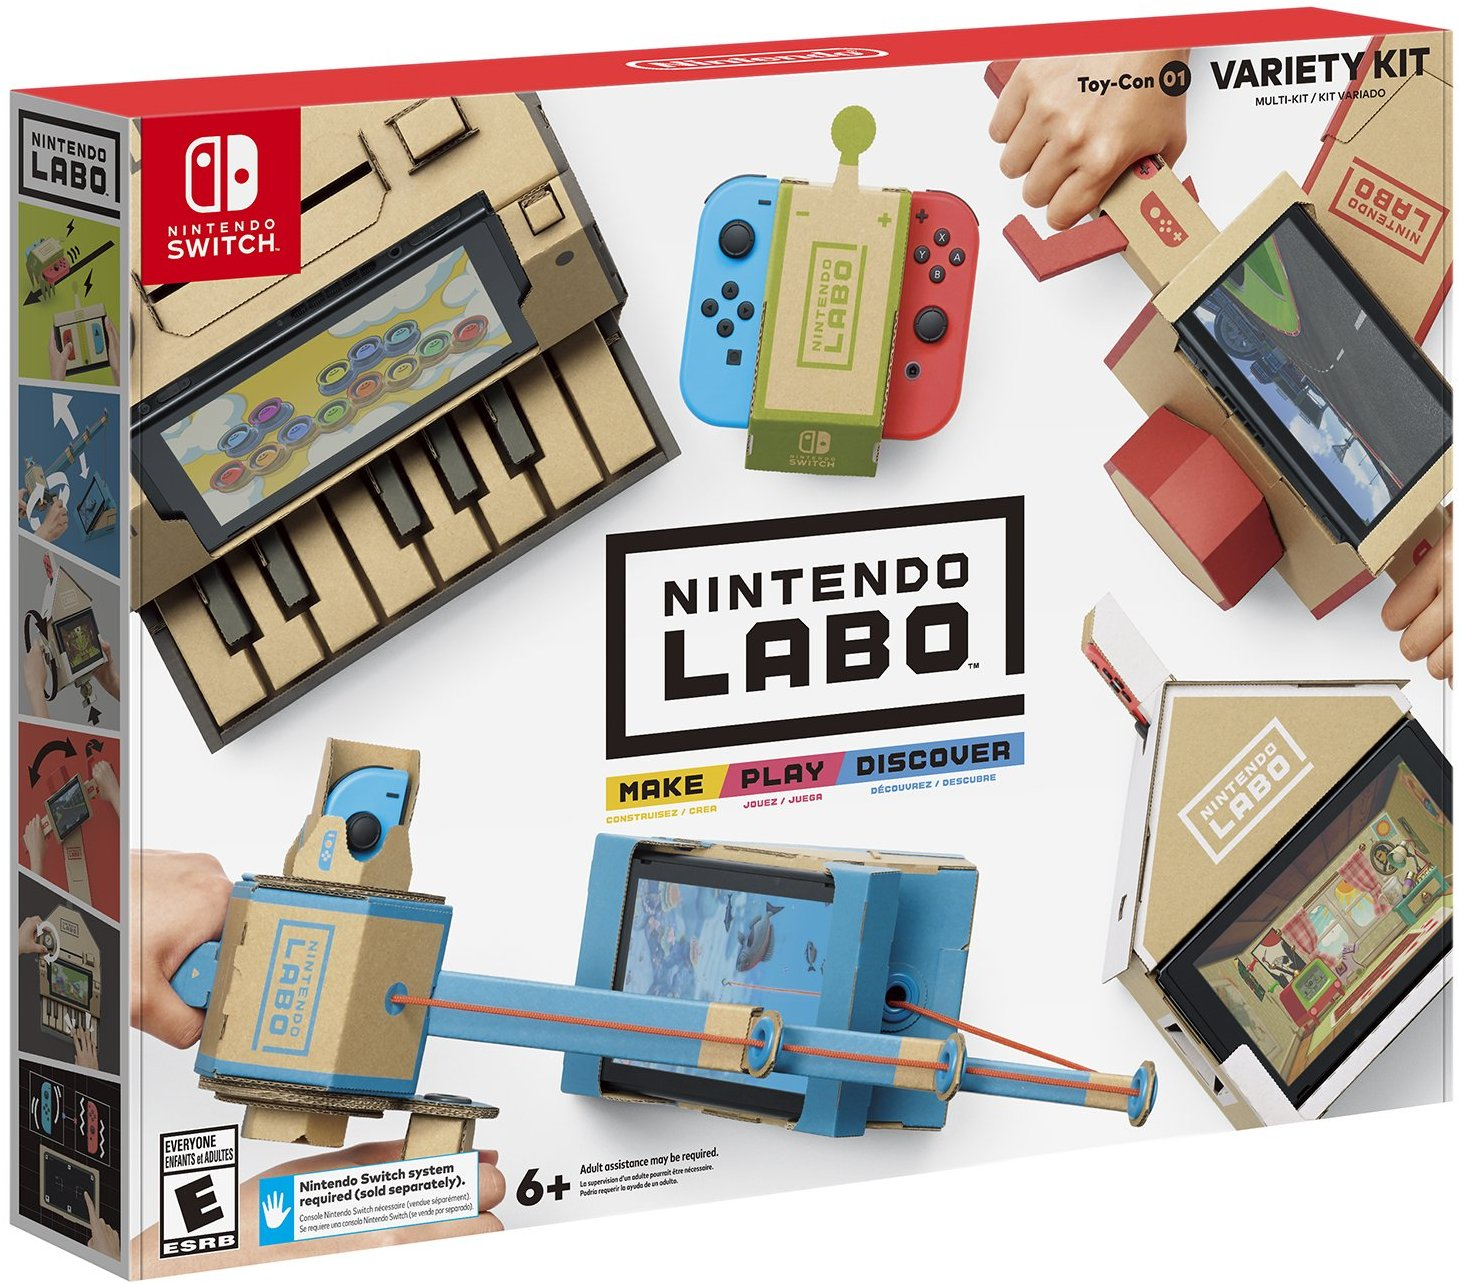 Introducing Nintendo Labo